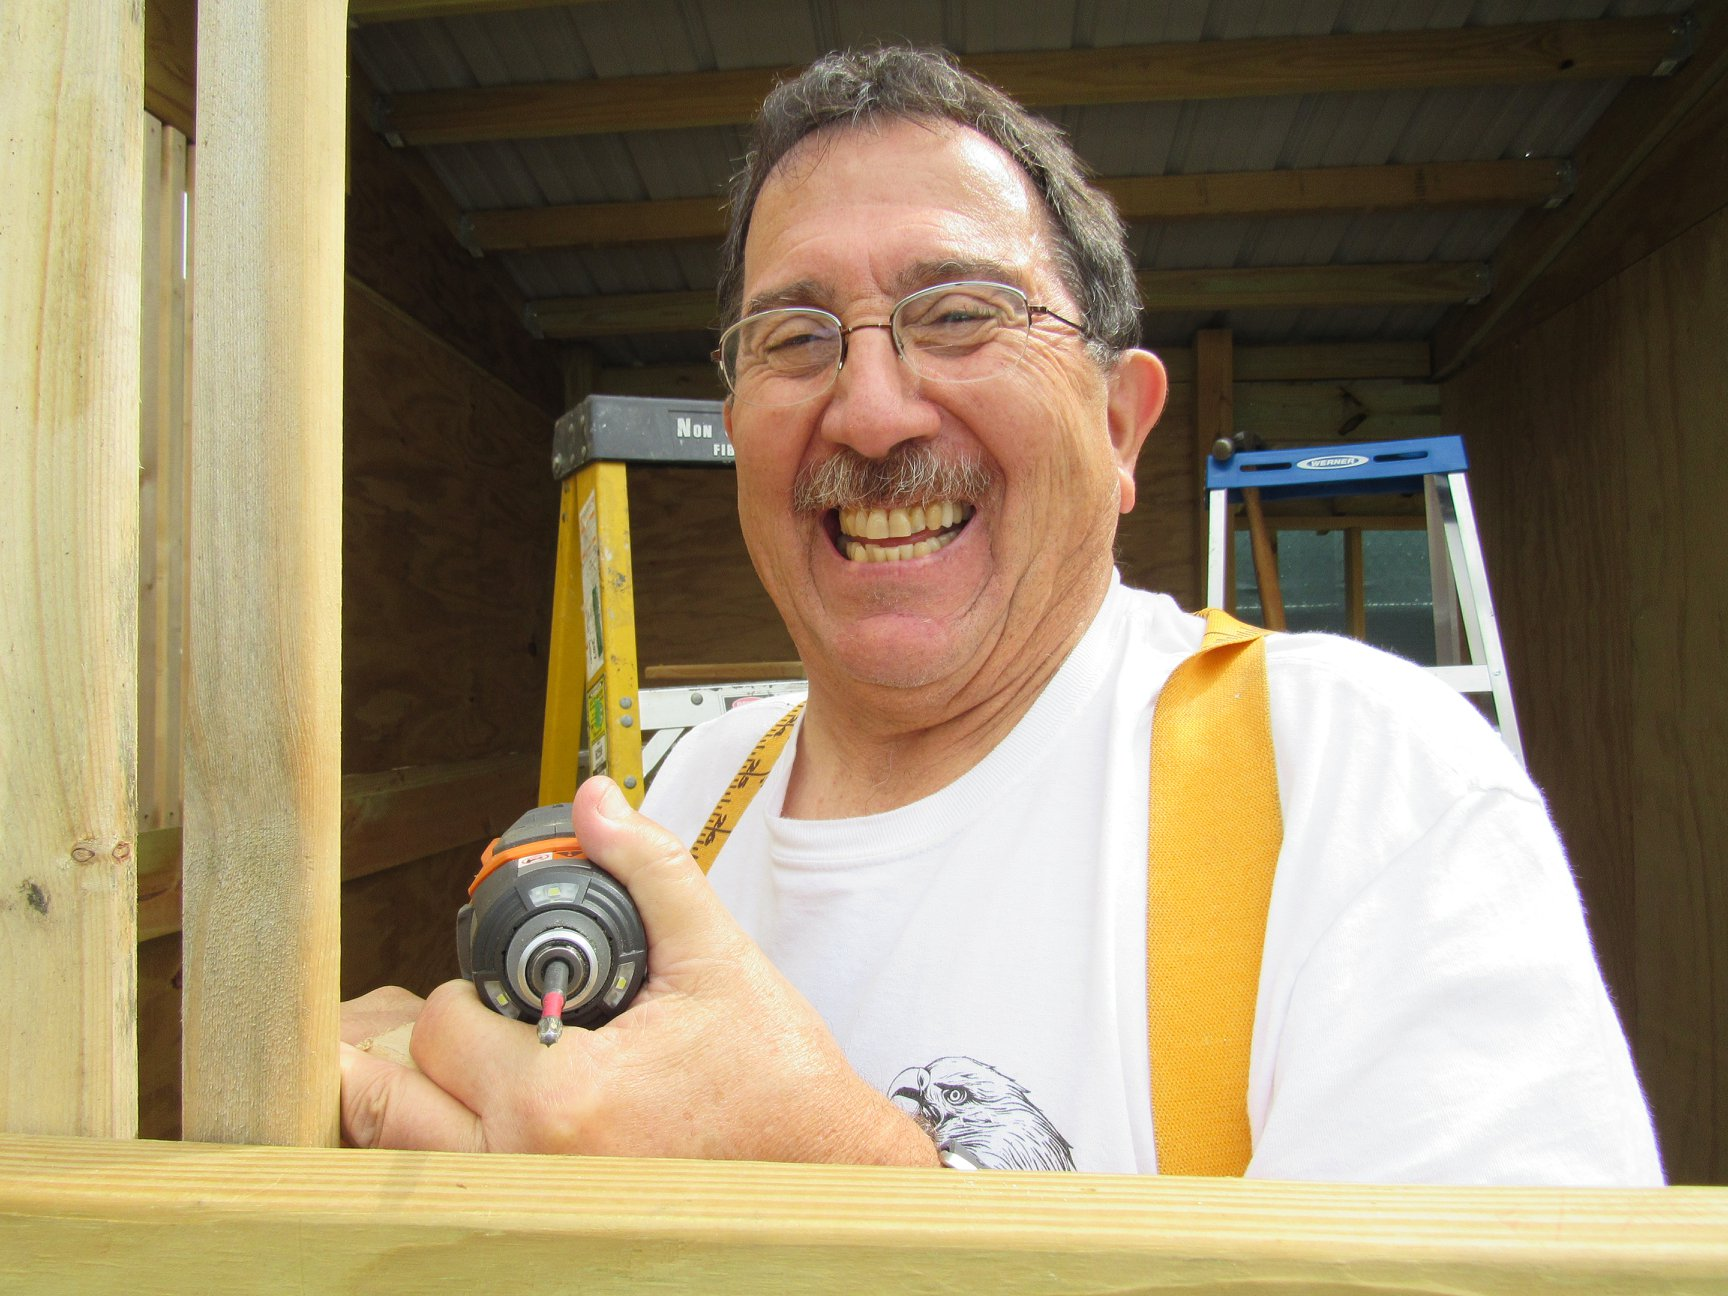 """Greg Toon has volunteered for REGI for many years and is our go to everything guy! Multi talented means he """"gets"""" to see us often as he volunteers on Tuesday and Thursday. He drives 1.5 hr each way to help us! Bravo to this amazing man!"""